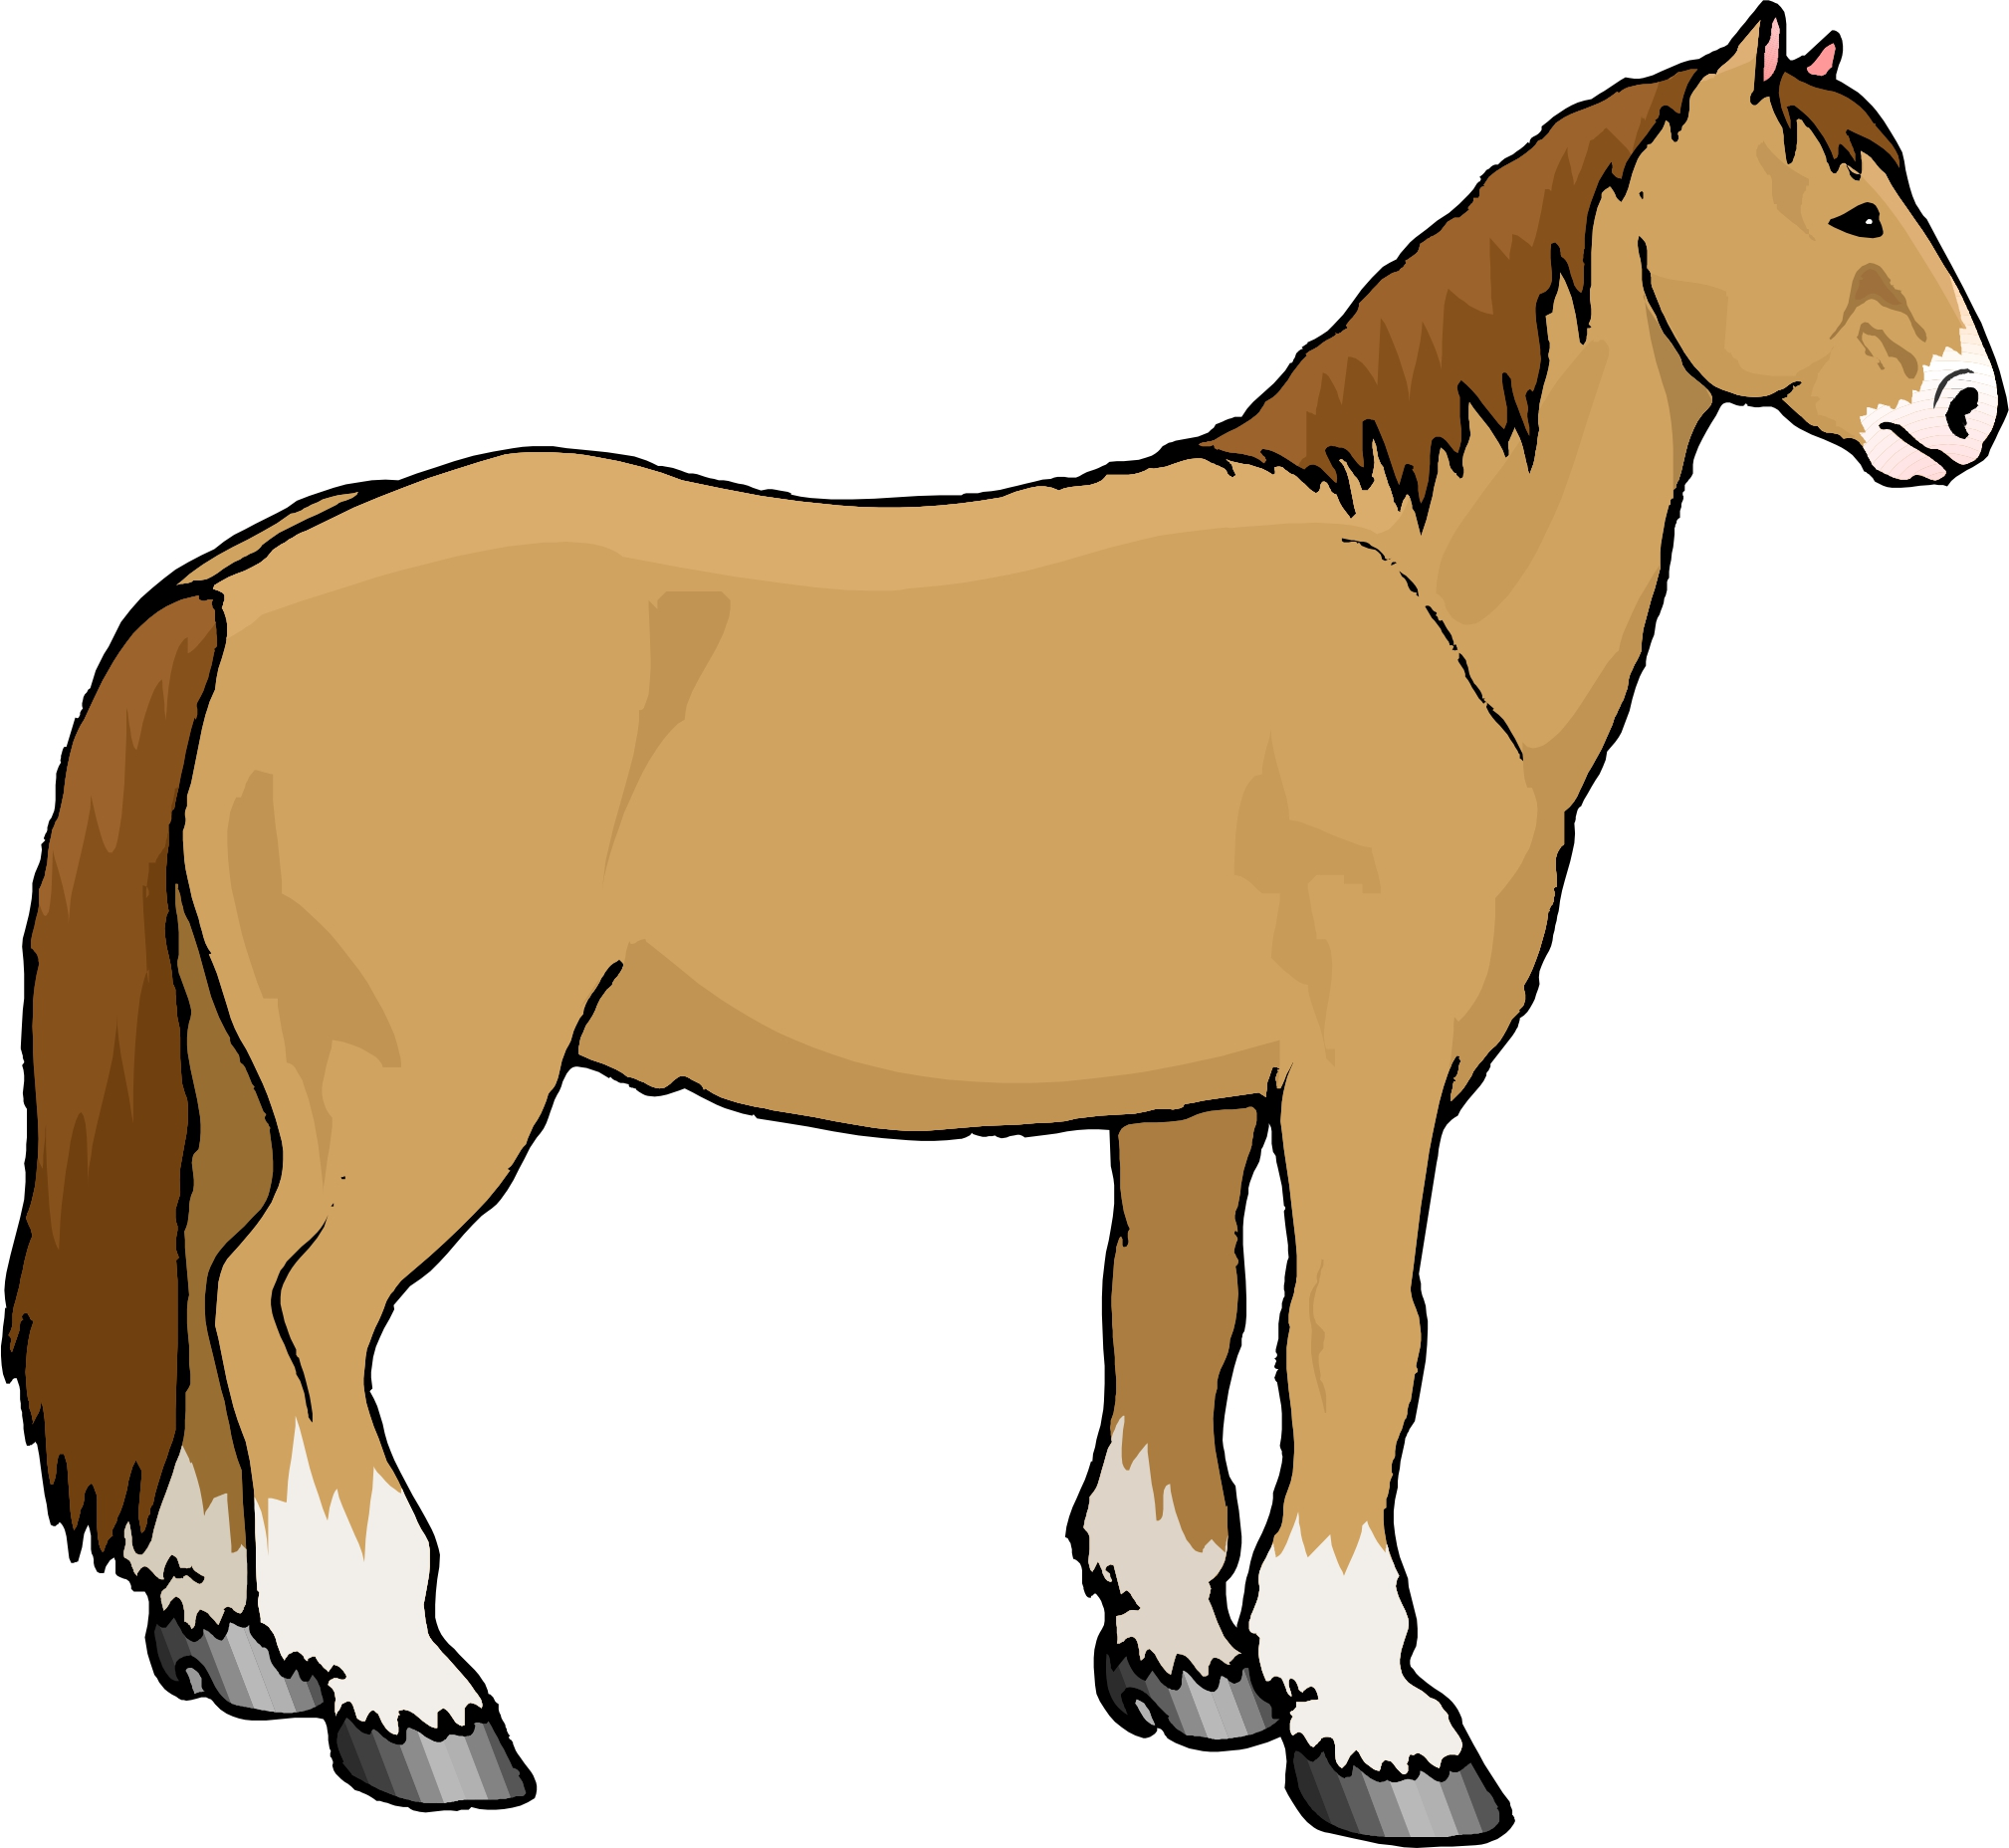 2018x1856 Cartoon Pics Of Horses 101 Clip Art